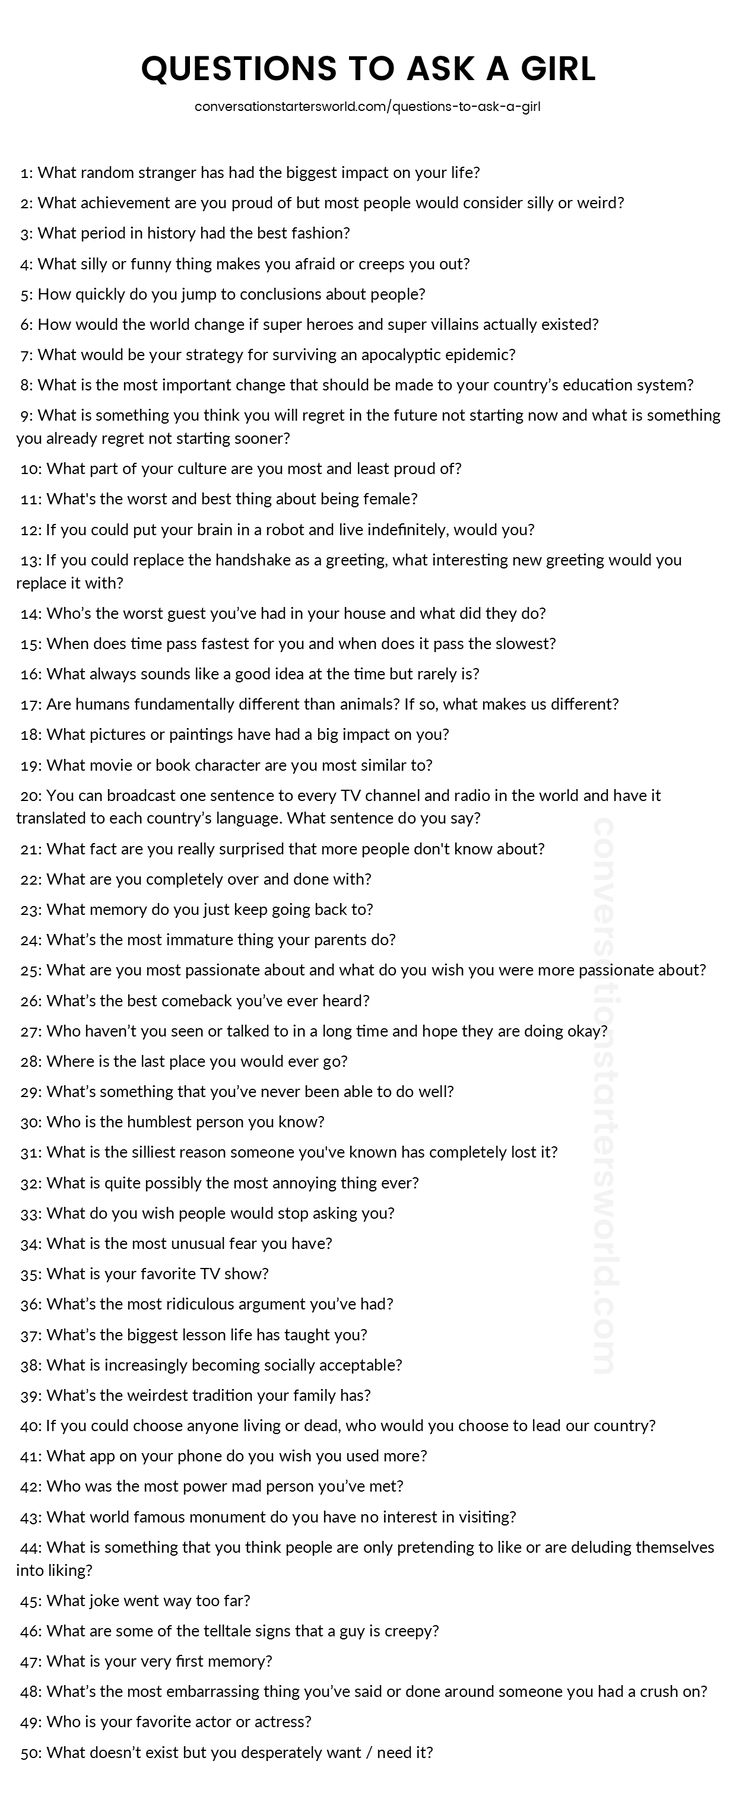 A list of great questions to ask a girl! Plus tips for asking each question on the site.